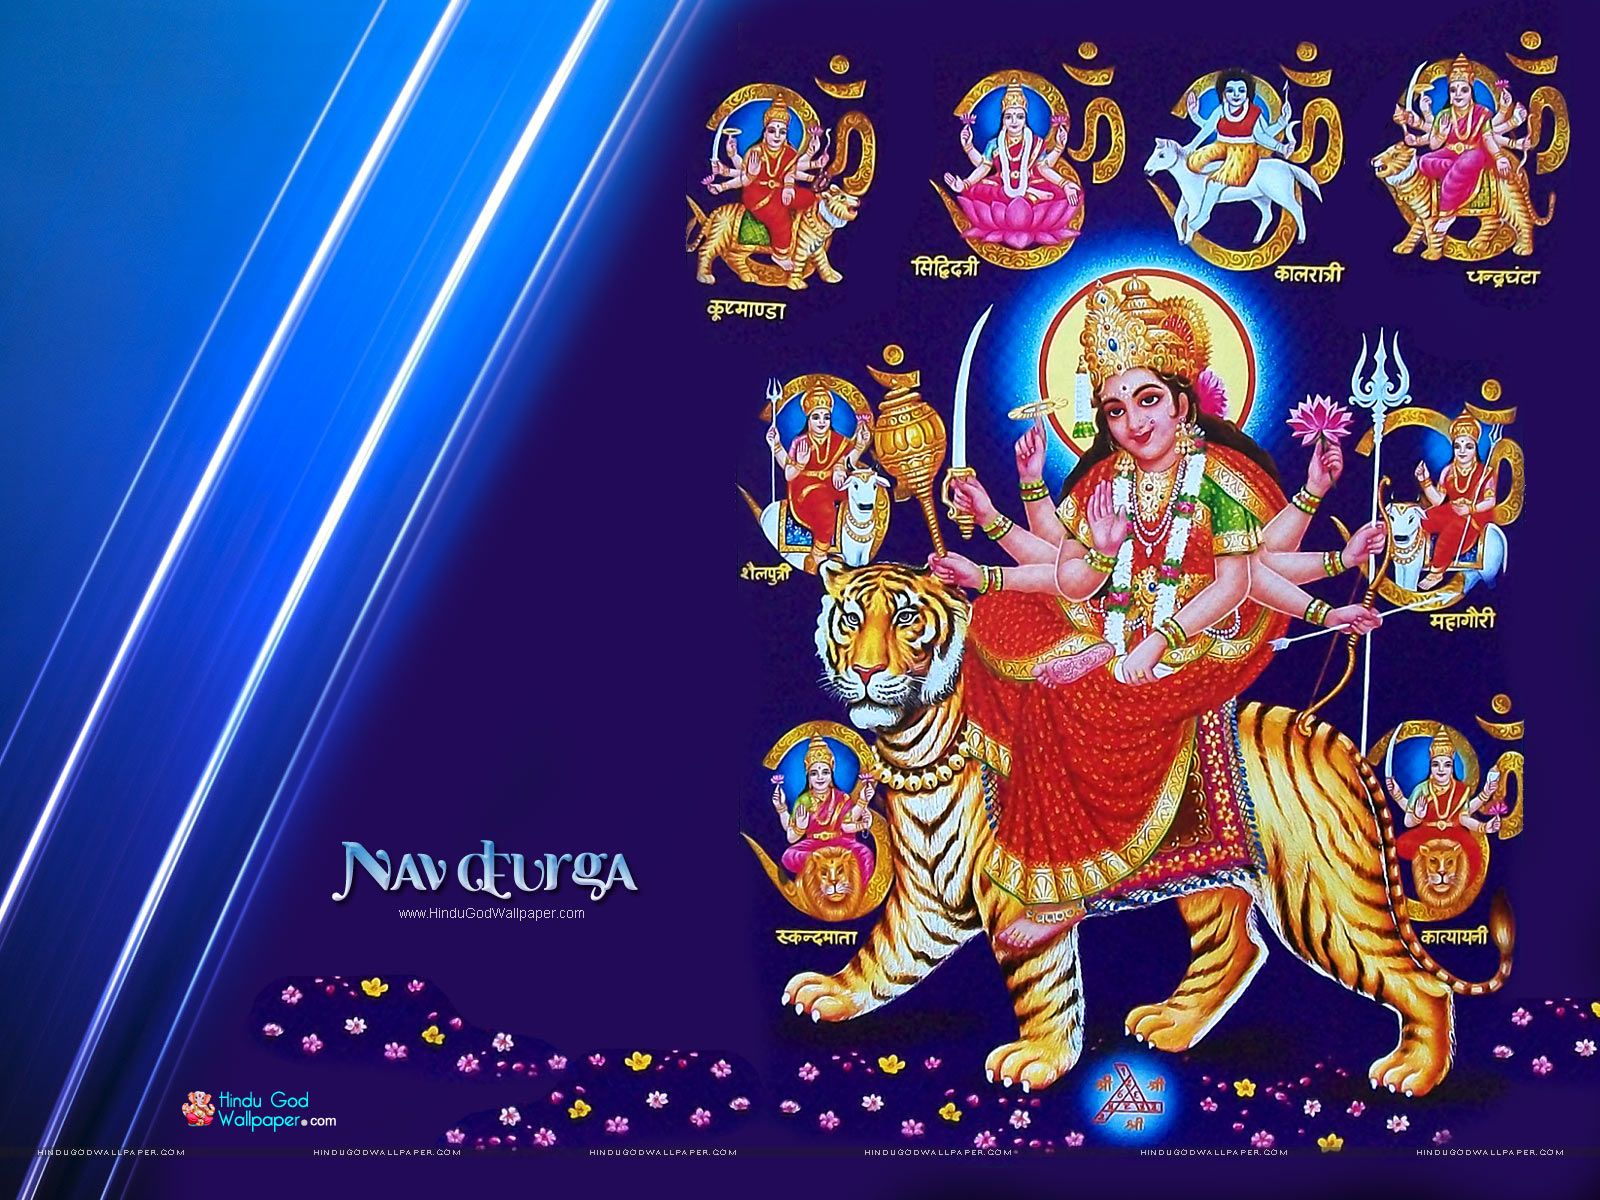 Wallpaper download mata rani - Maa Durga 9 Roop Wallpaper Free Download